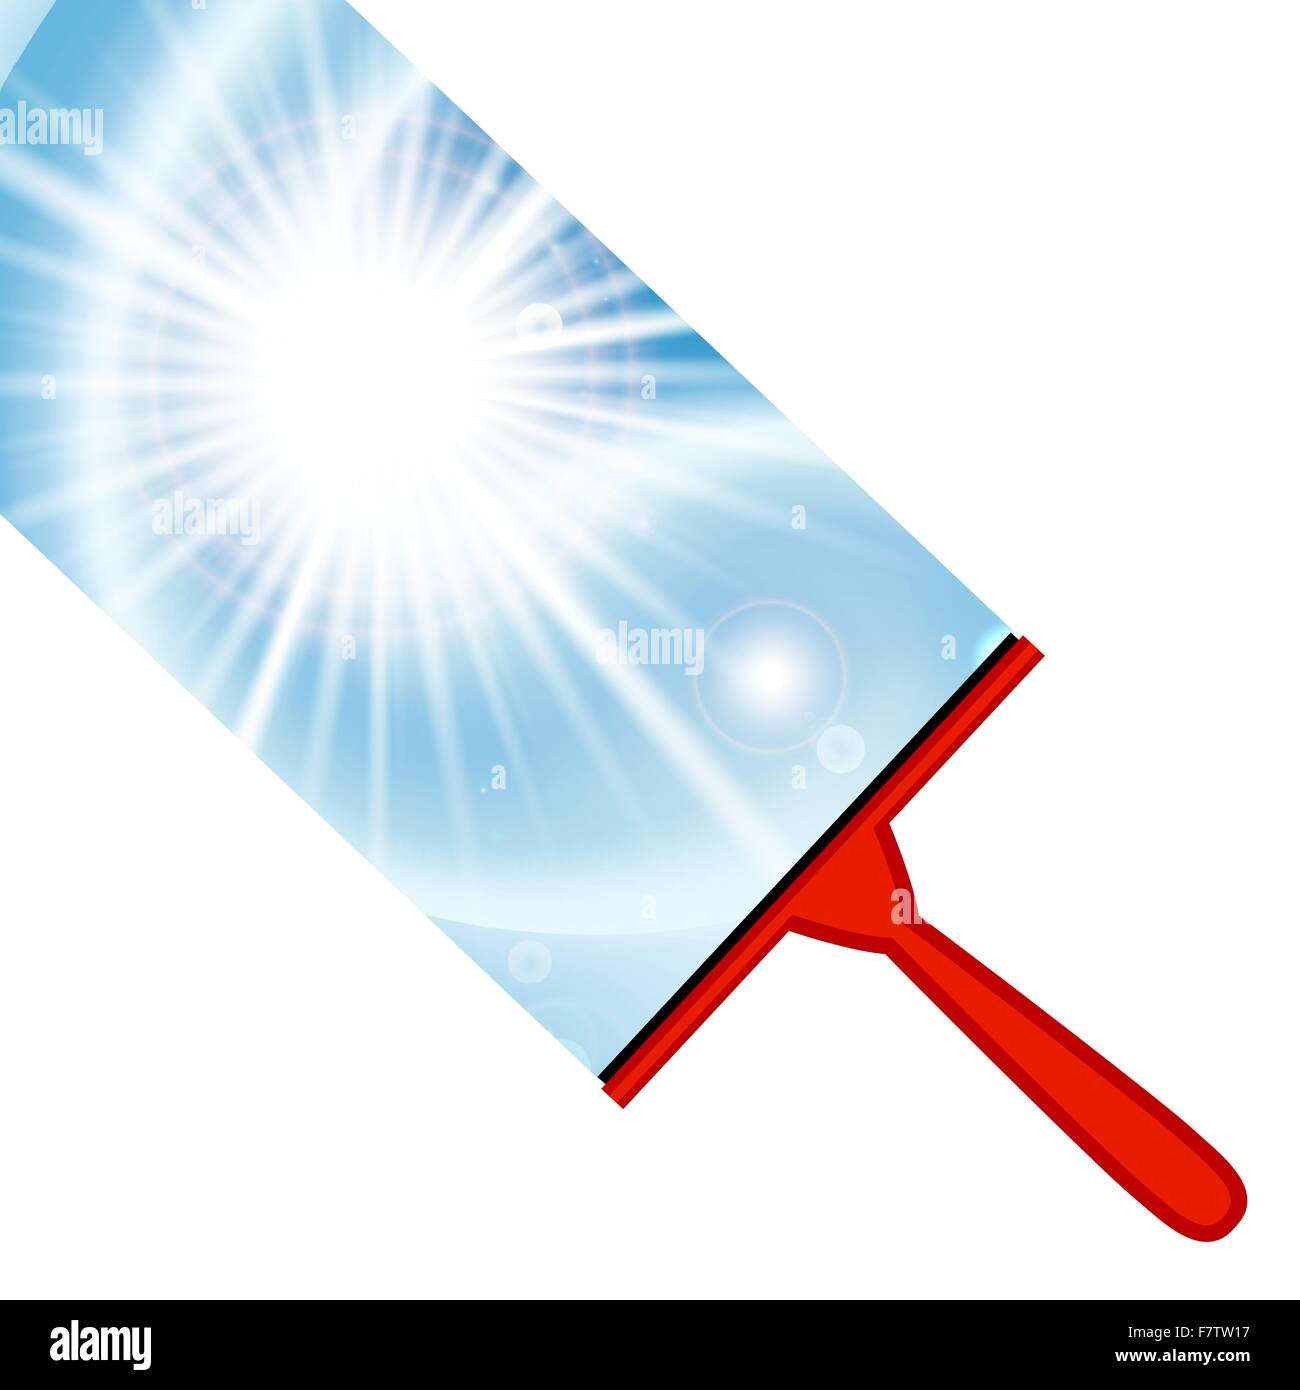 Illustration of window cleaning background with squeegee - Stock Vector